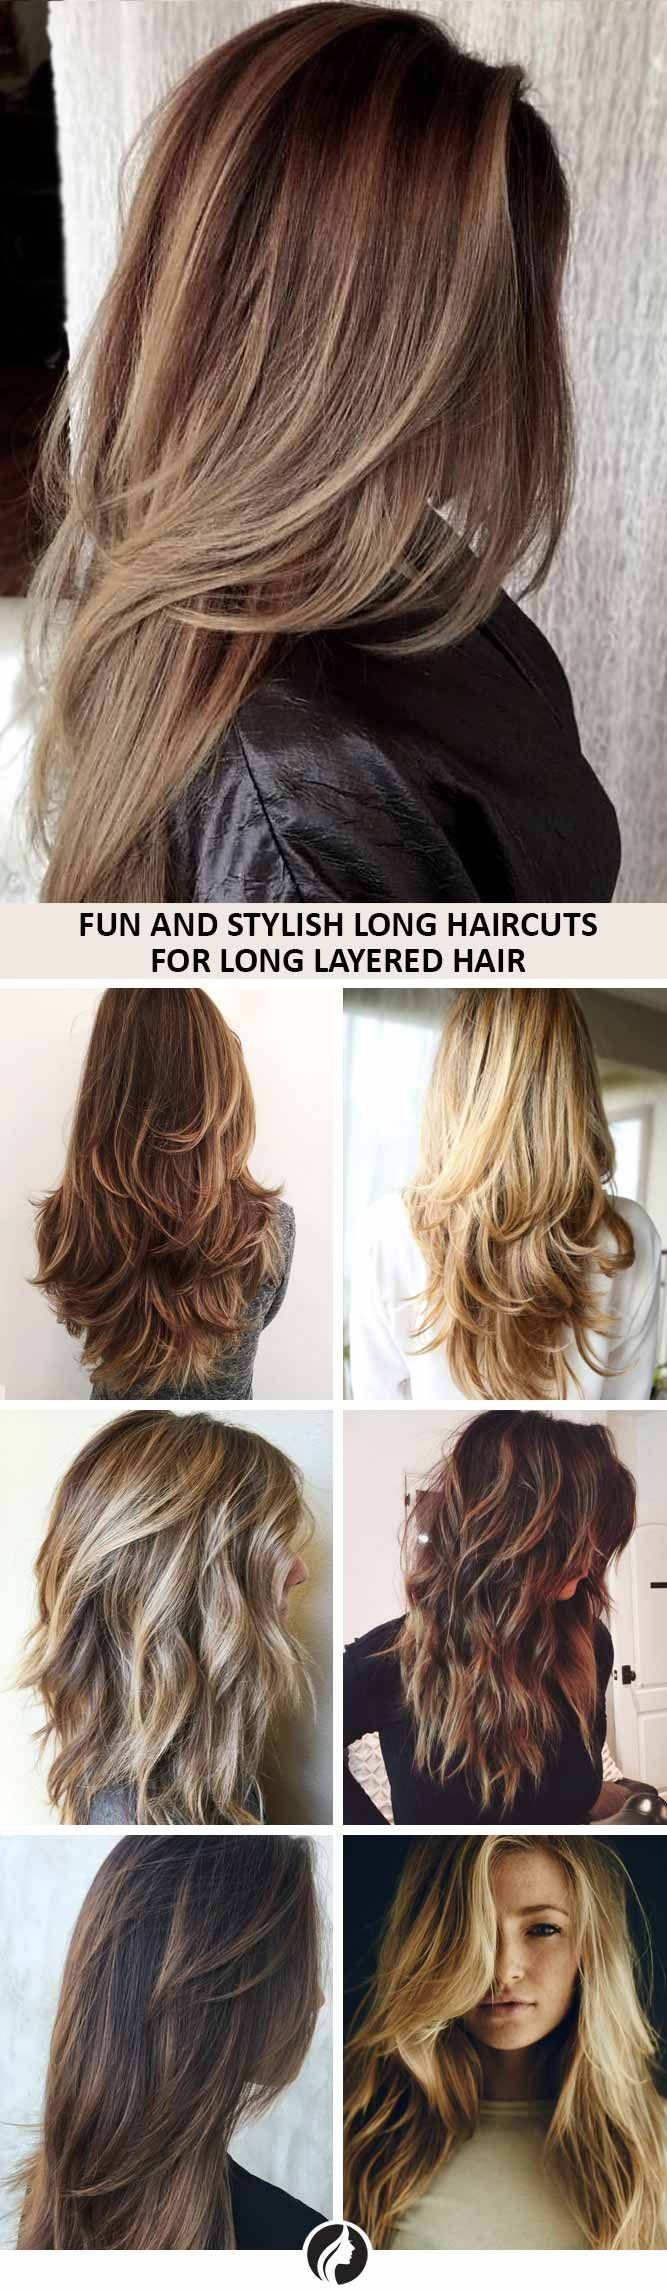 21 long haircuts with layers for every type of texture | long